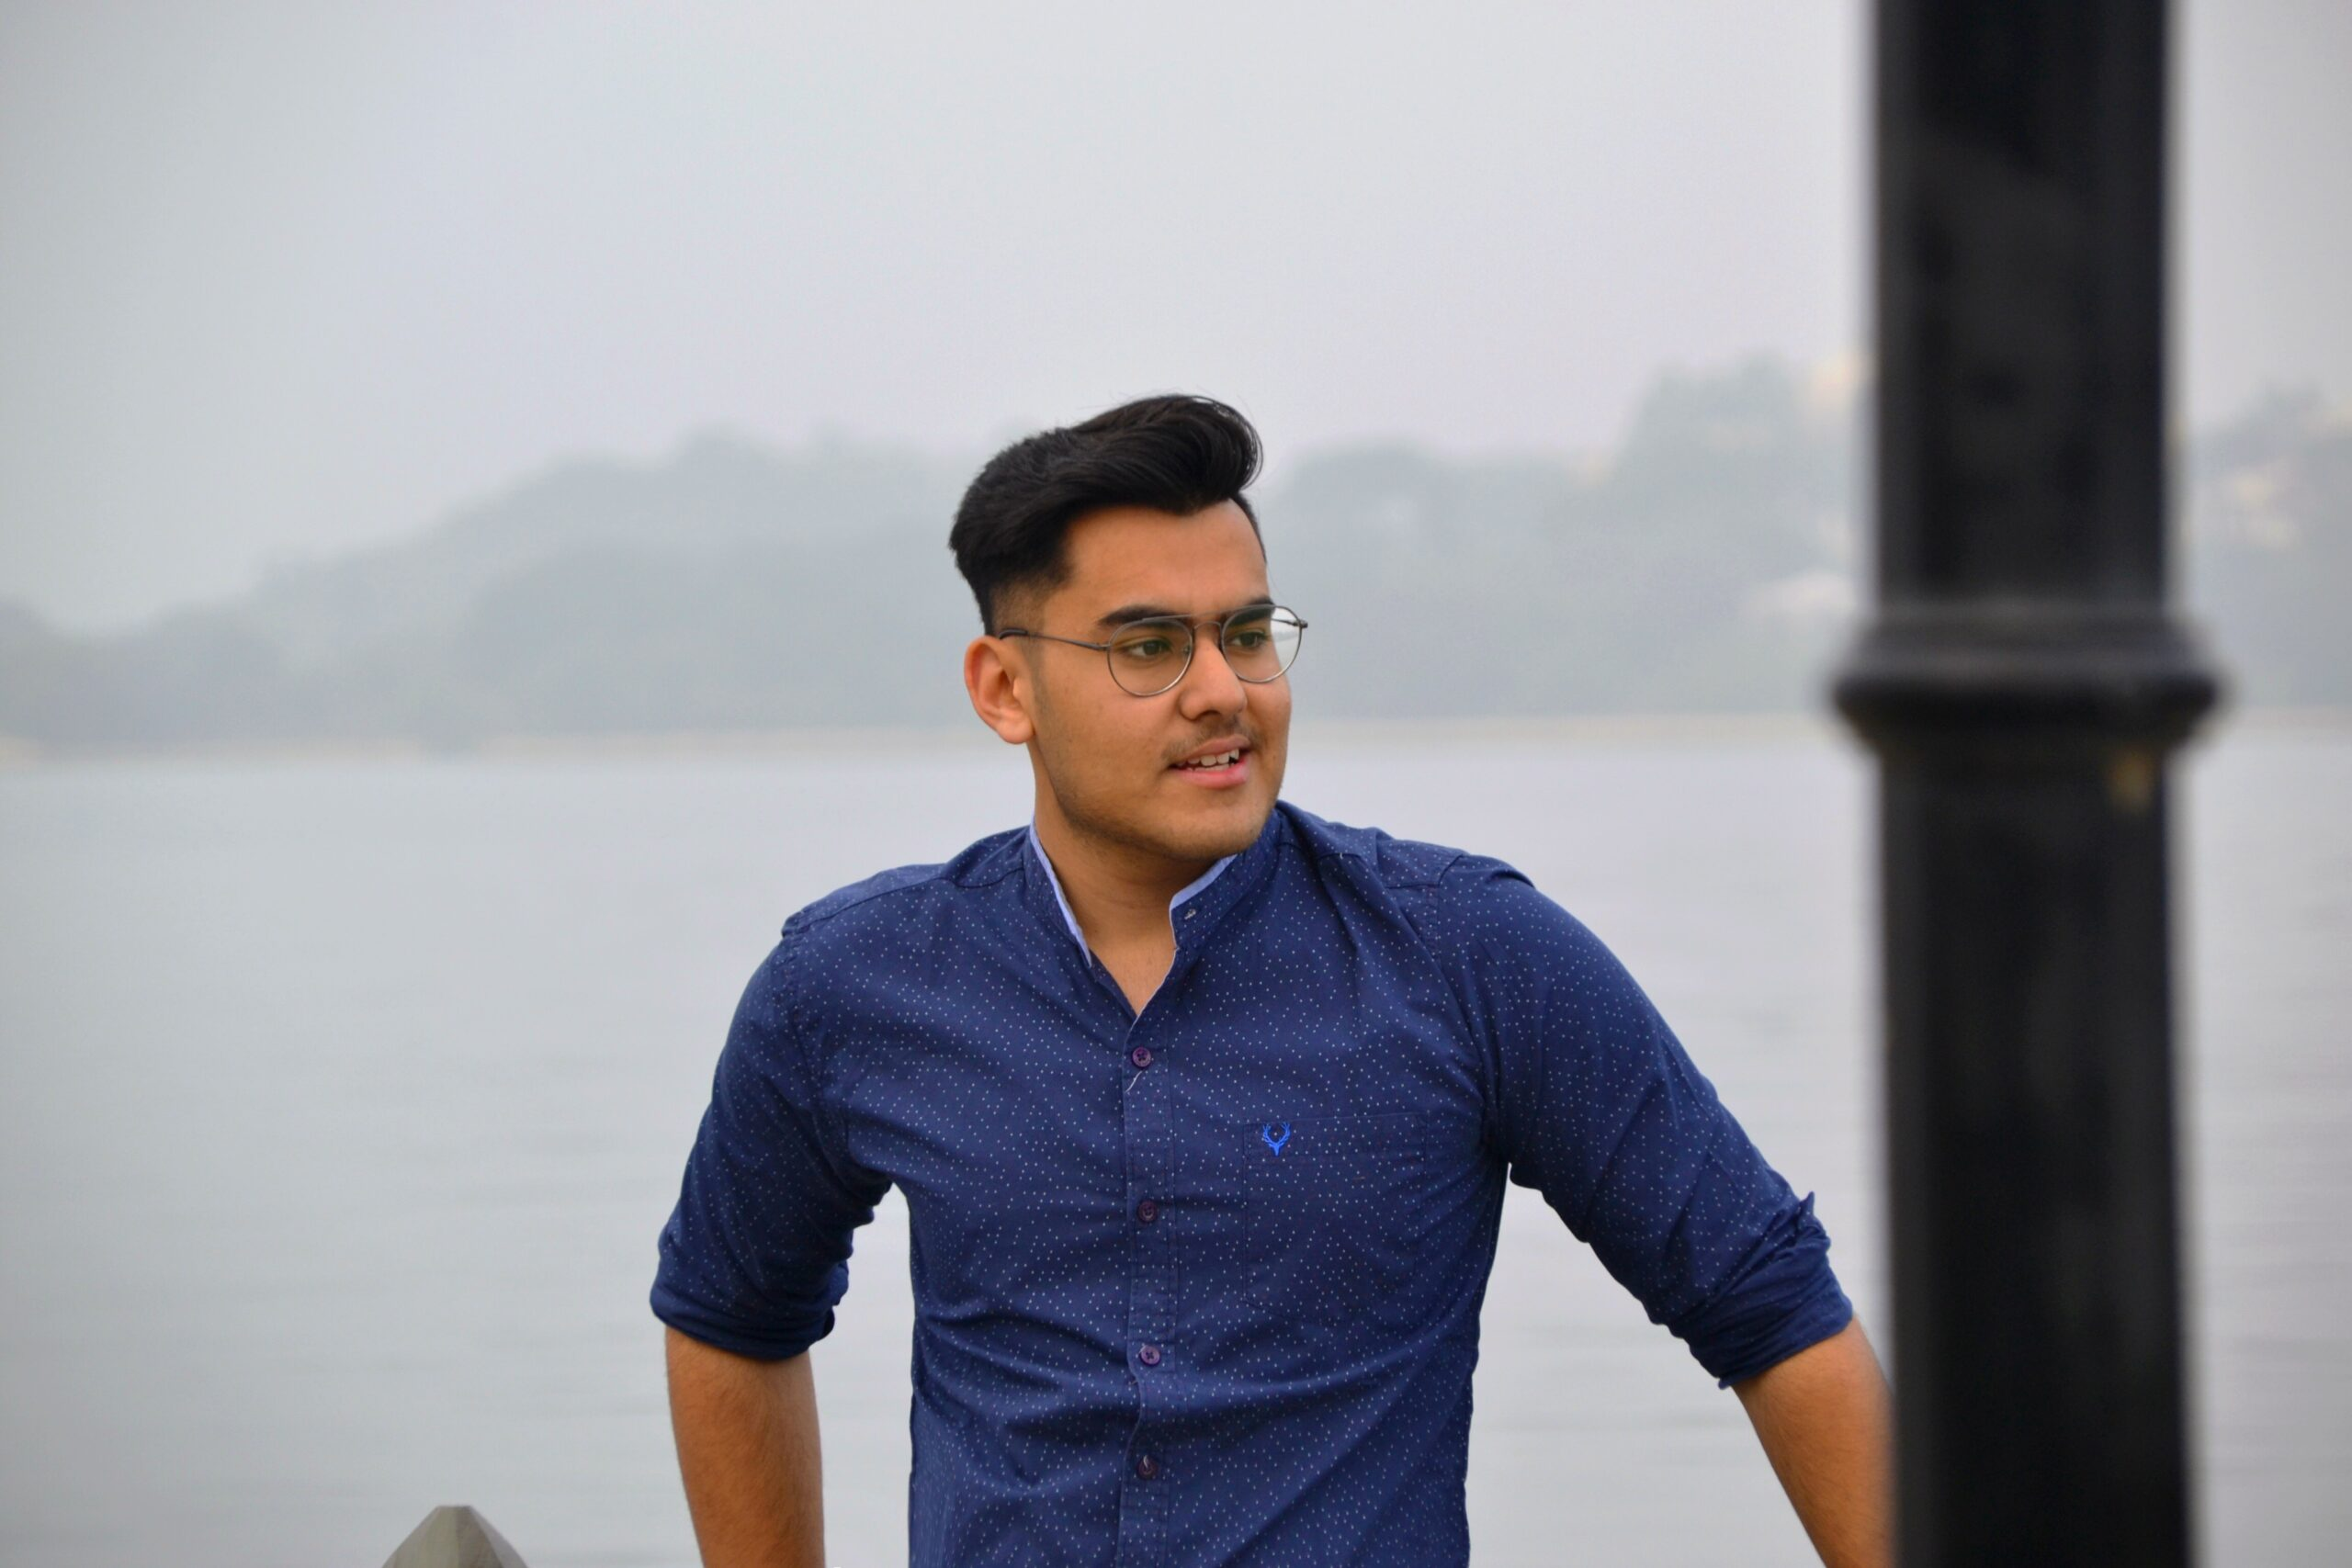 Mr Arham, The Digital Marketing king, know about his journey towards ruling the market